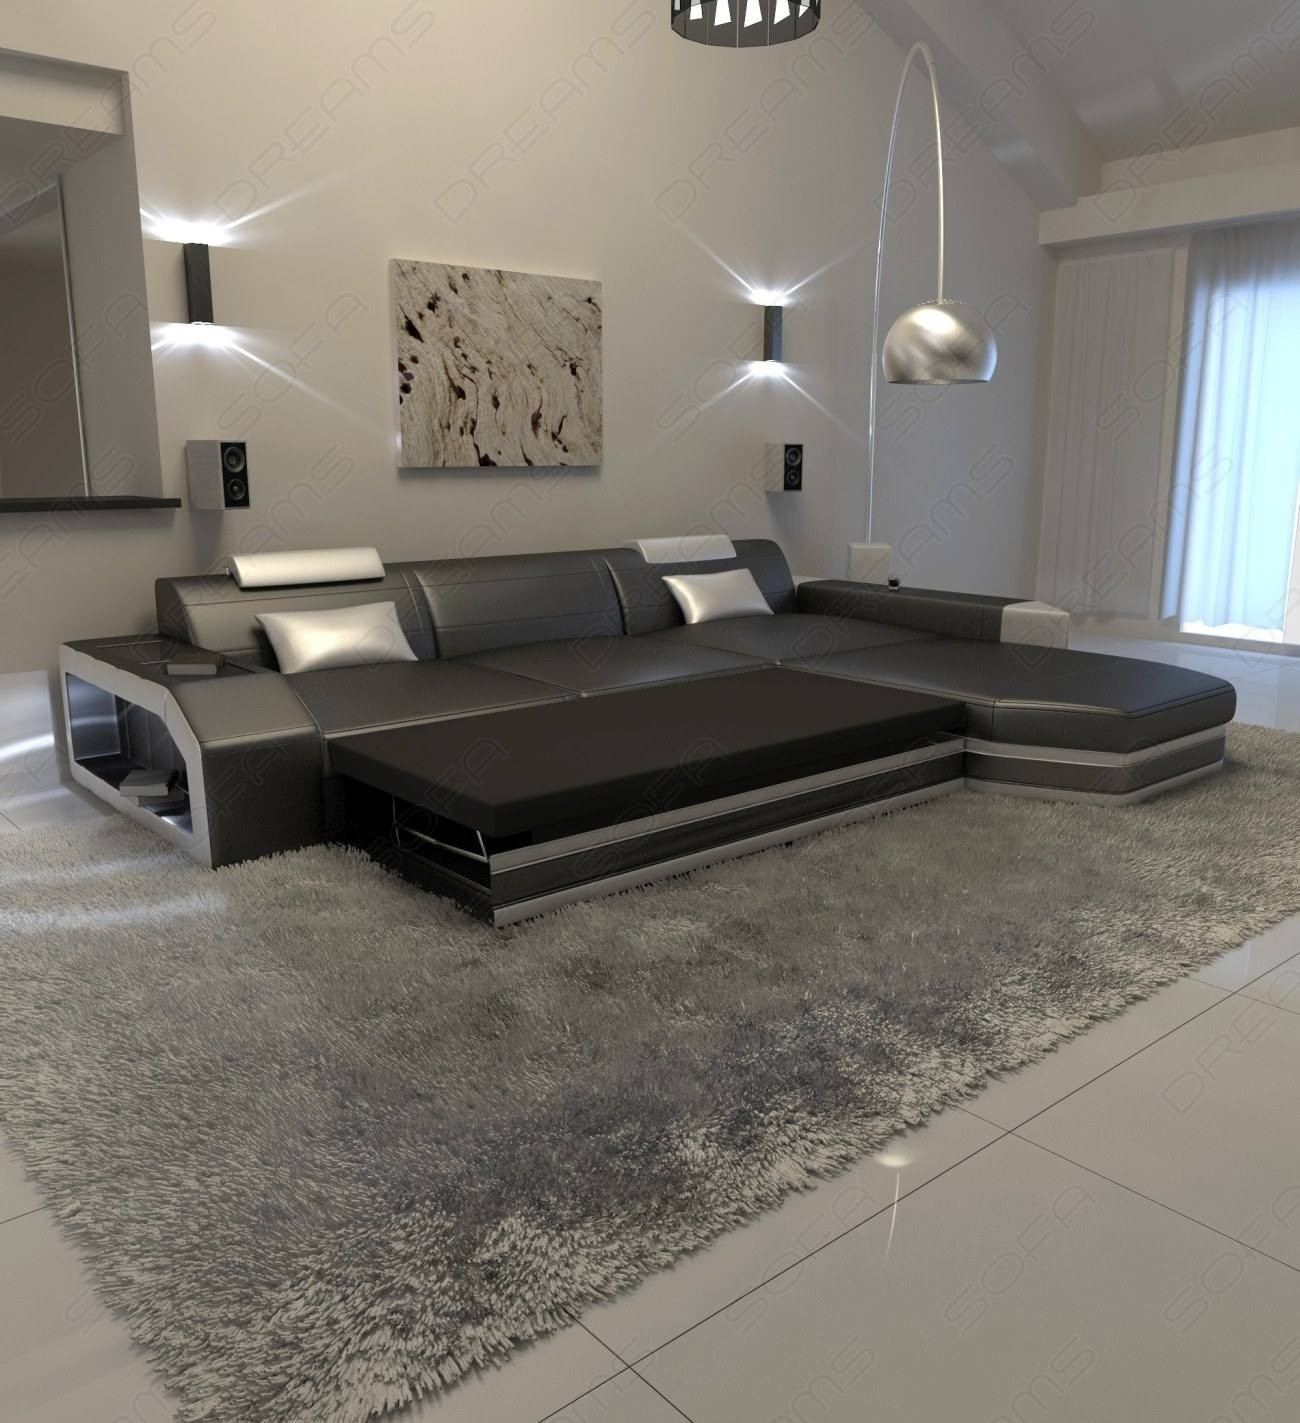 Modern L Shaped Sofa Dallas with LED Lights